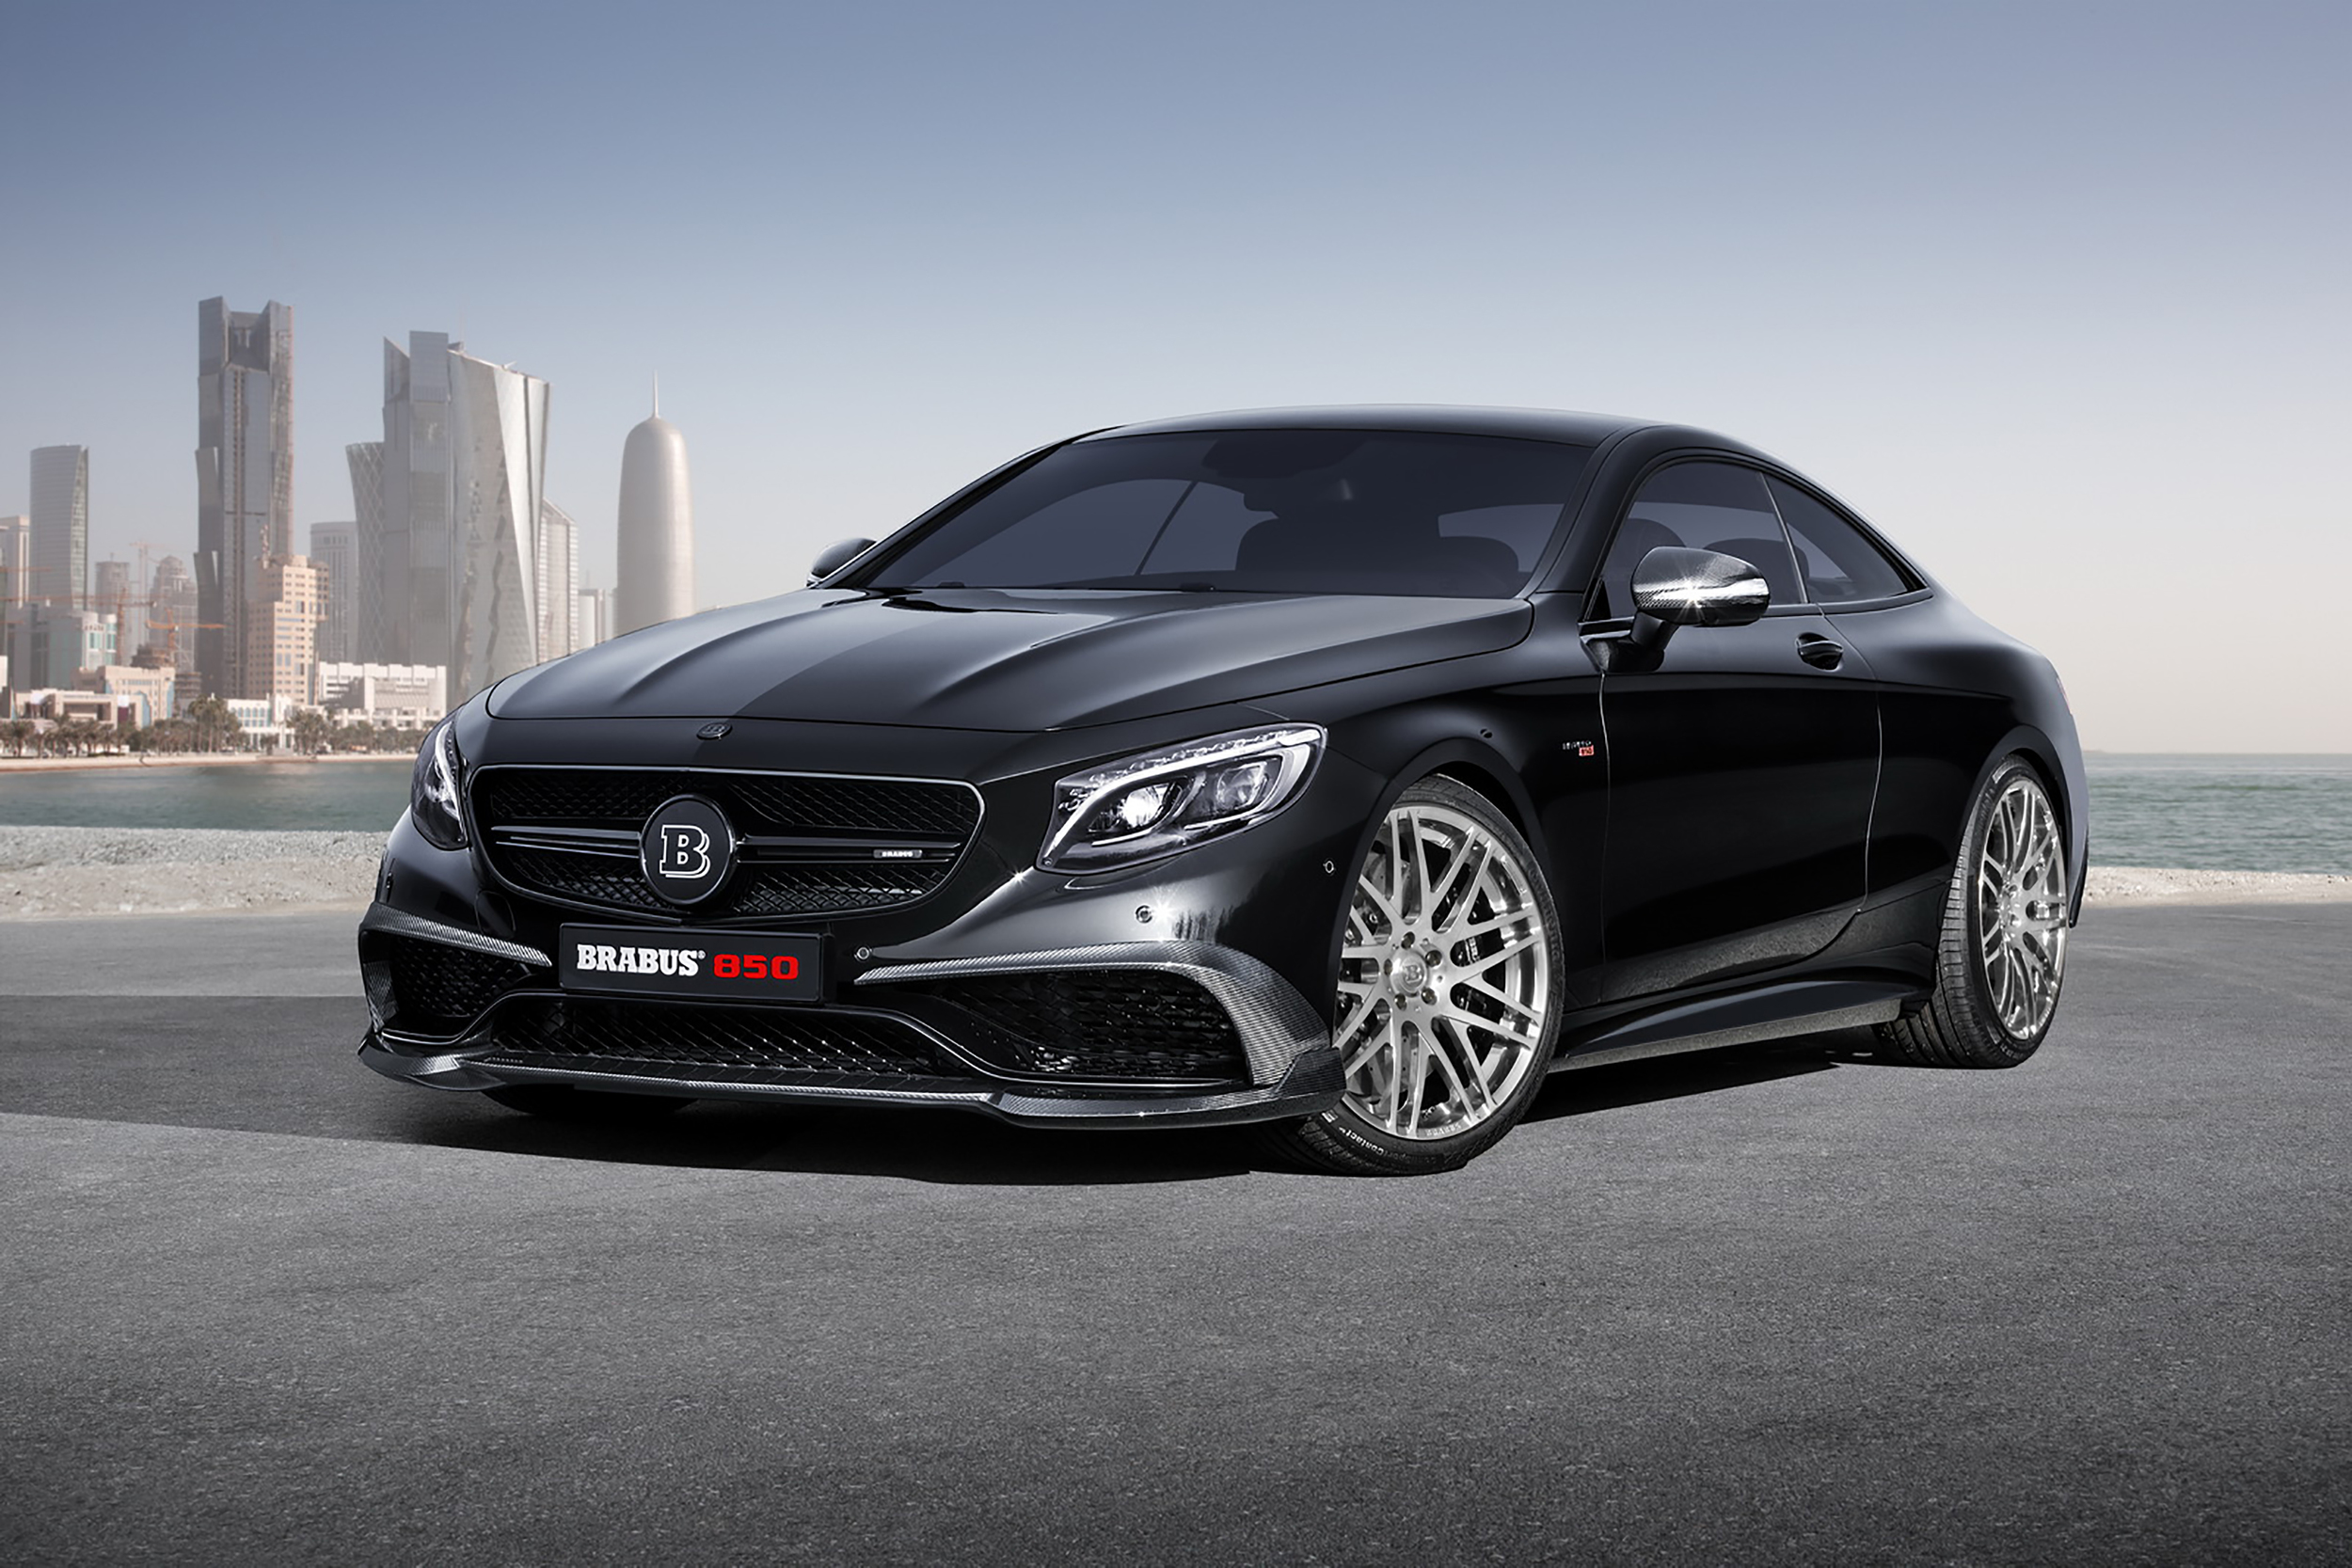 ' ' from the web at 'http://www.blogcdn.com/slideshows/images/slides/335/948/2/S3359482/slug/l/brabus-s-class-coupe-13-1.jpg'